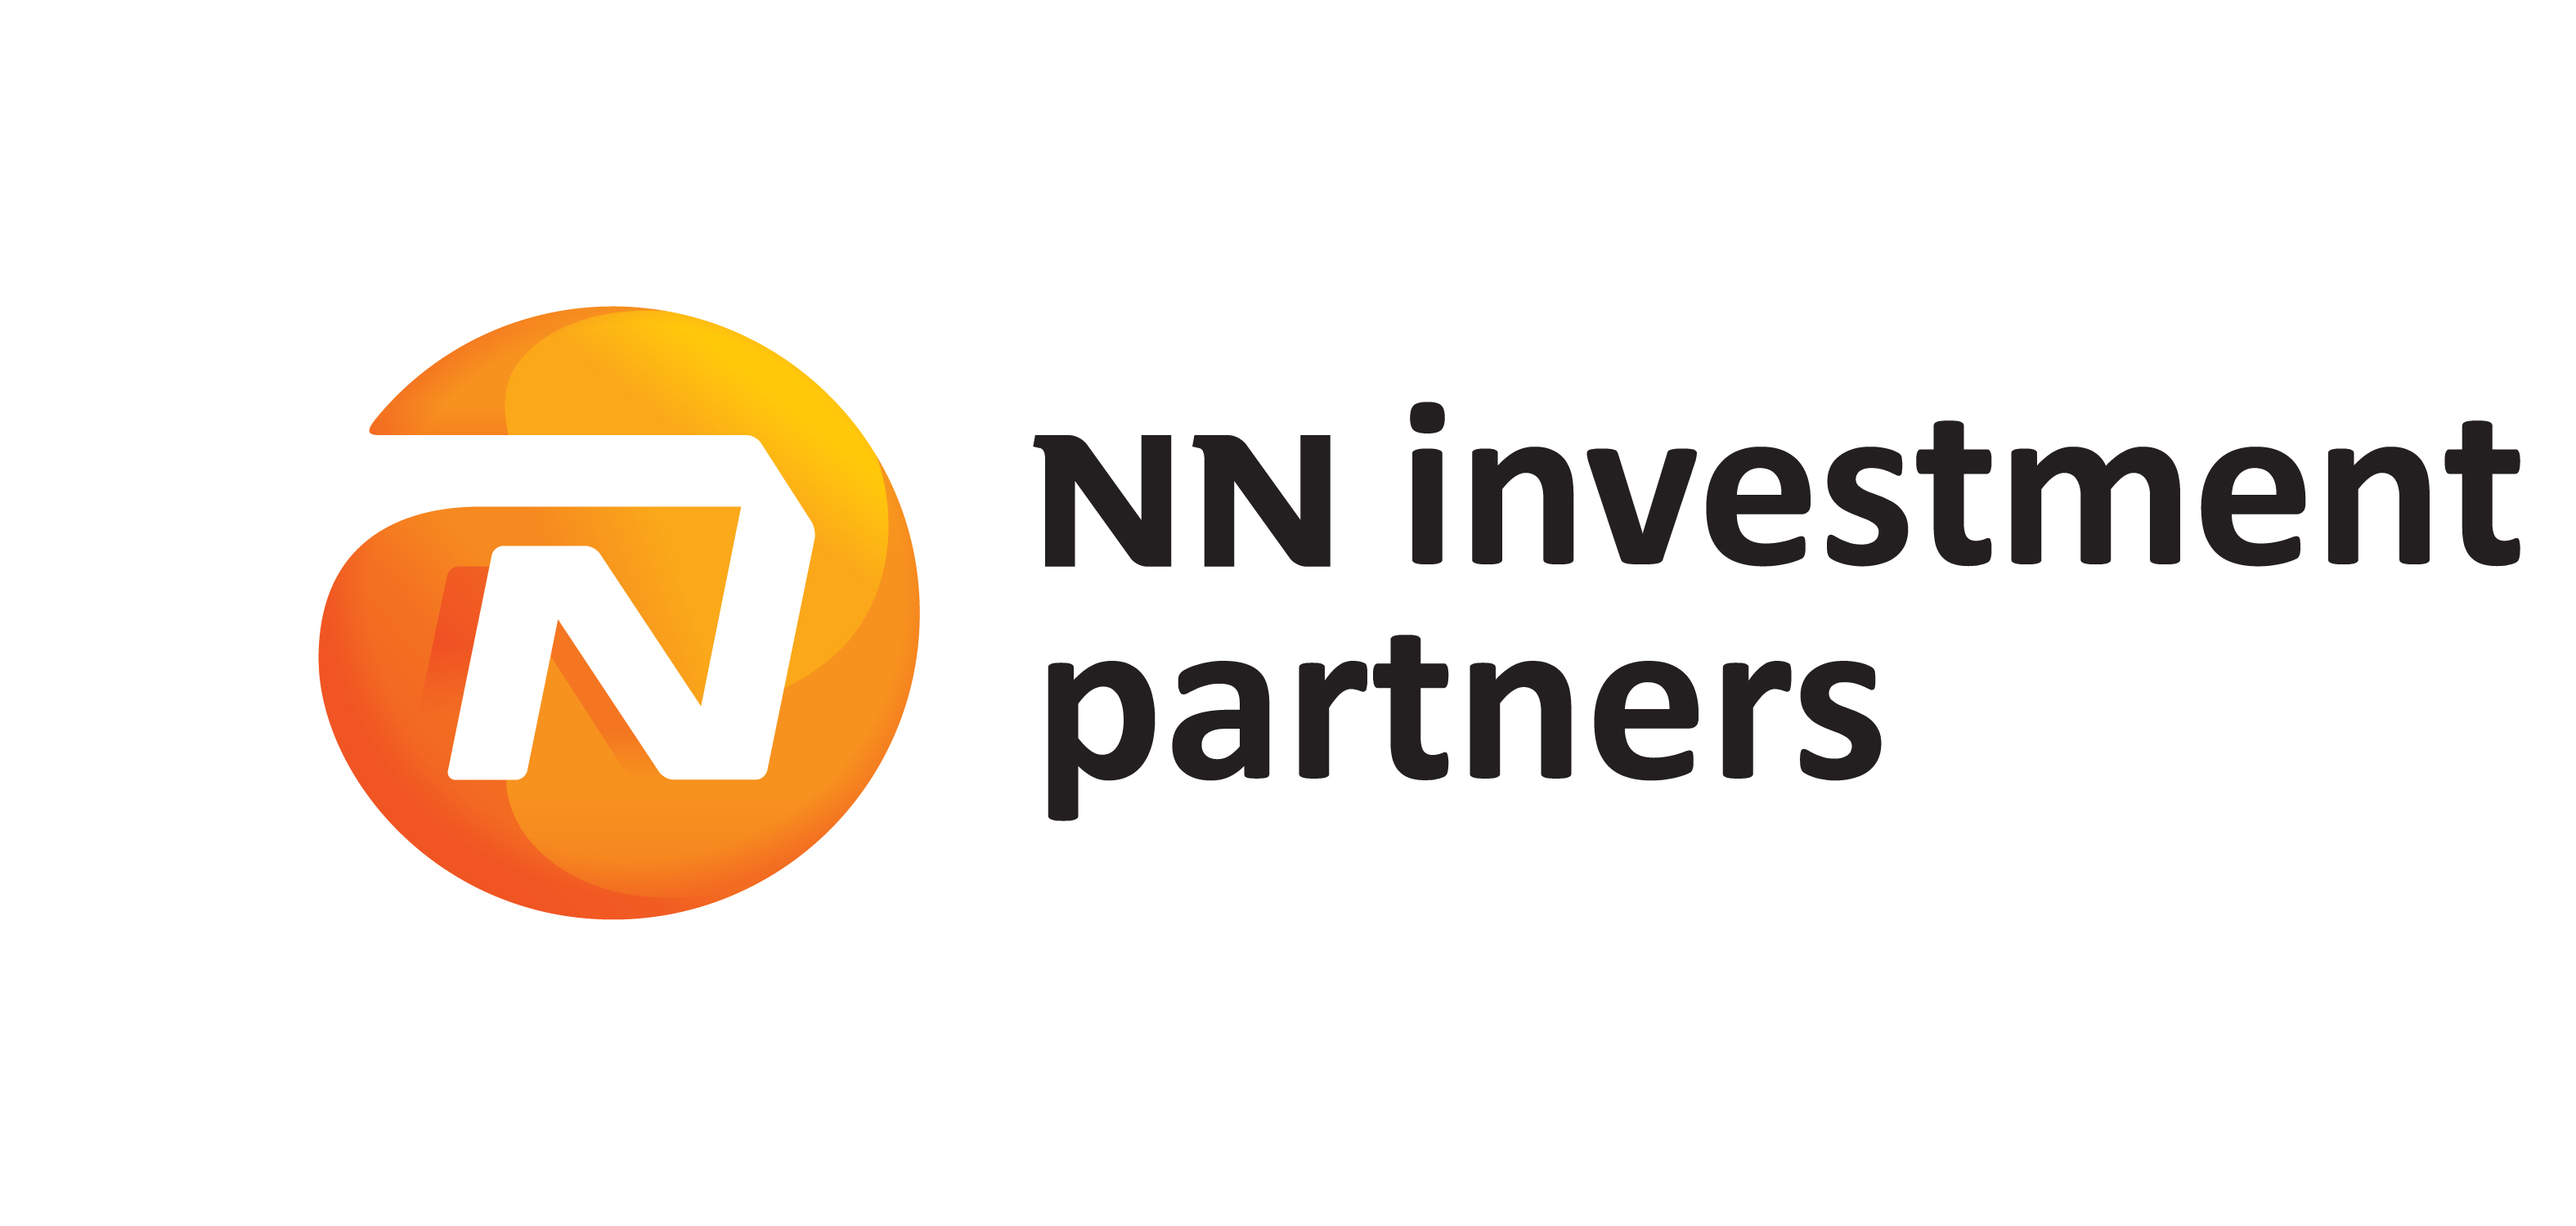 NN Investment Partners wederom A+ toegekend door Principles for Responsible Investment